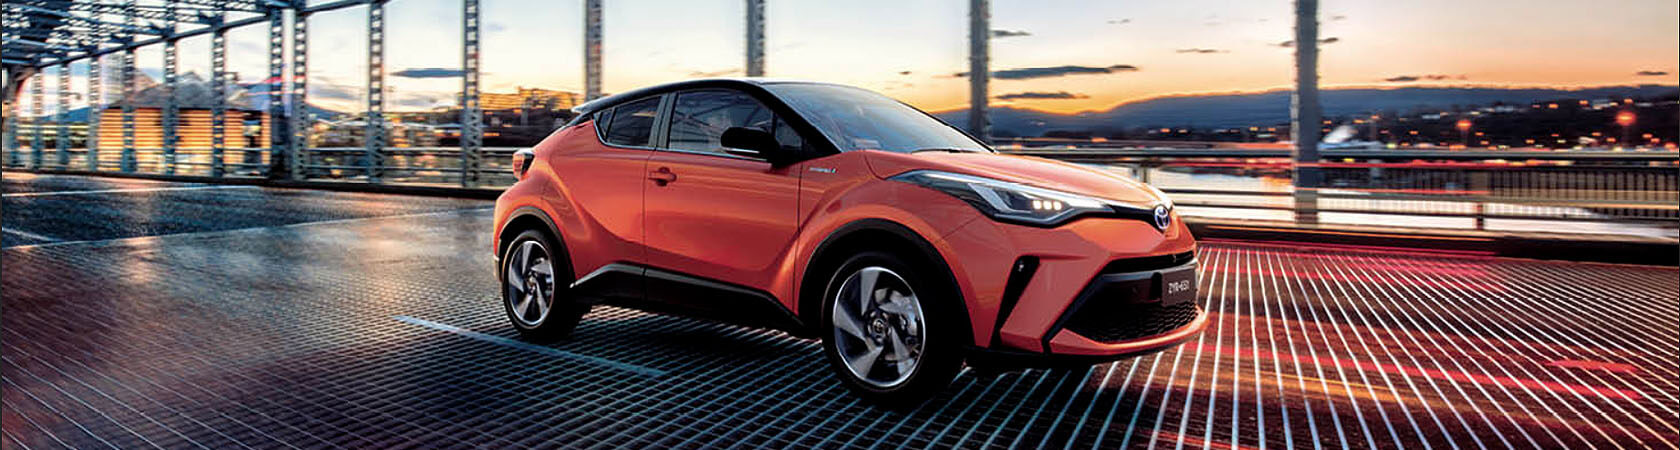 Grand Motors Toyota C-HR